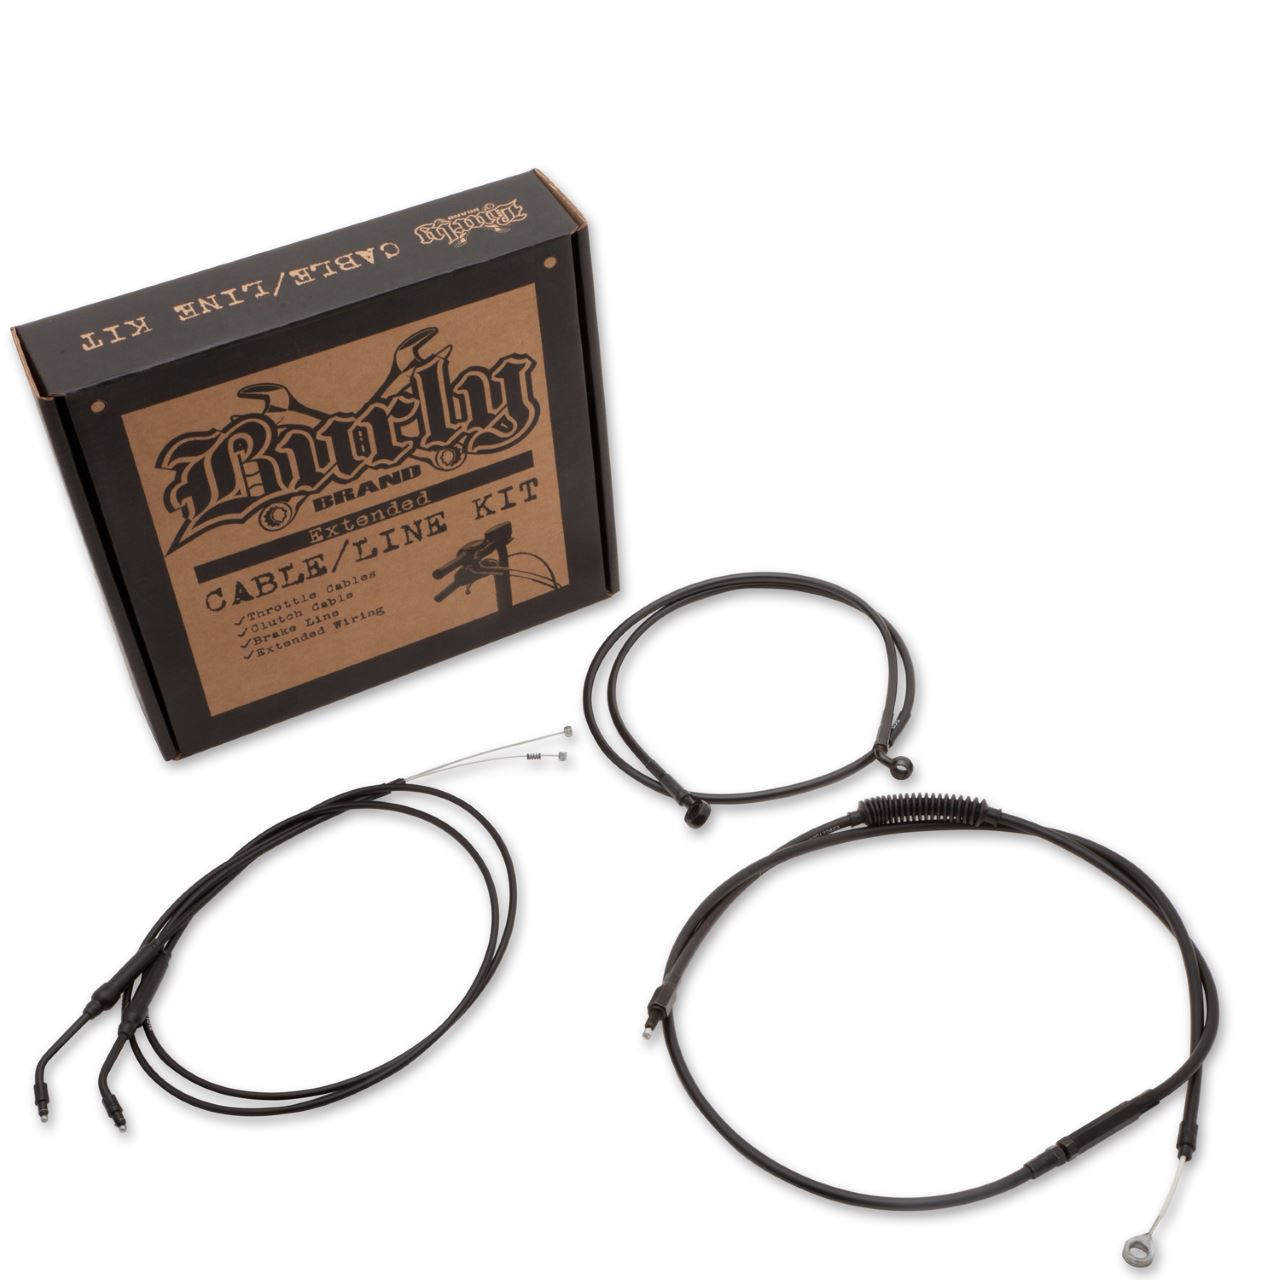 Cable Kits For Sportsters with Clubman Bars | CABLE KITS